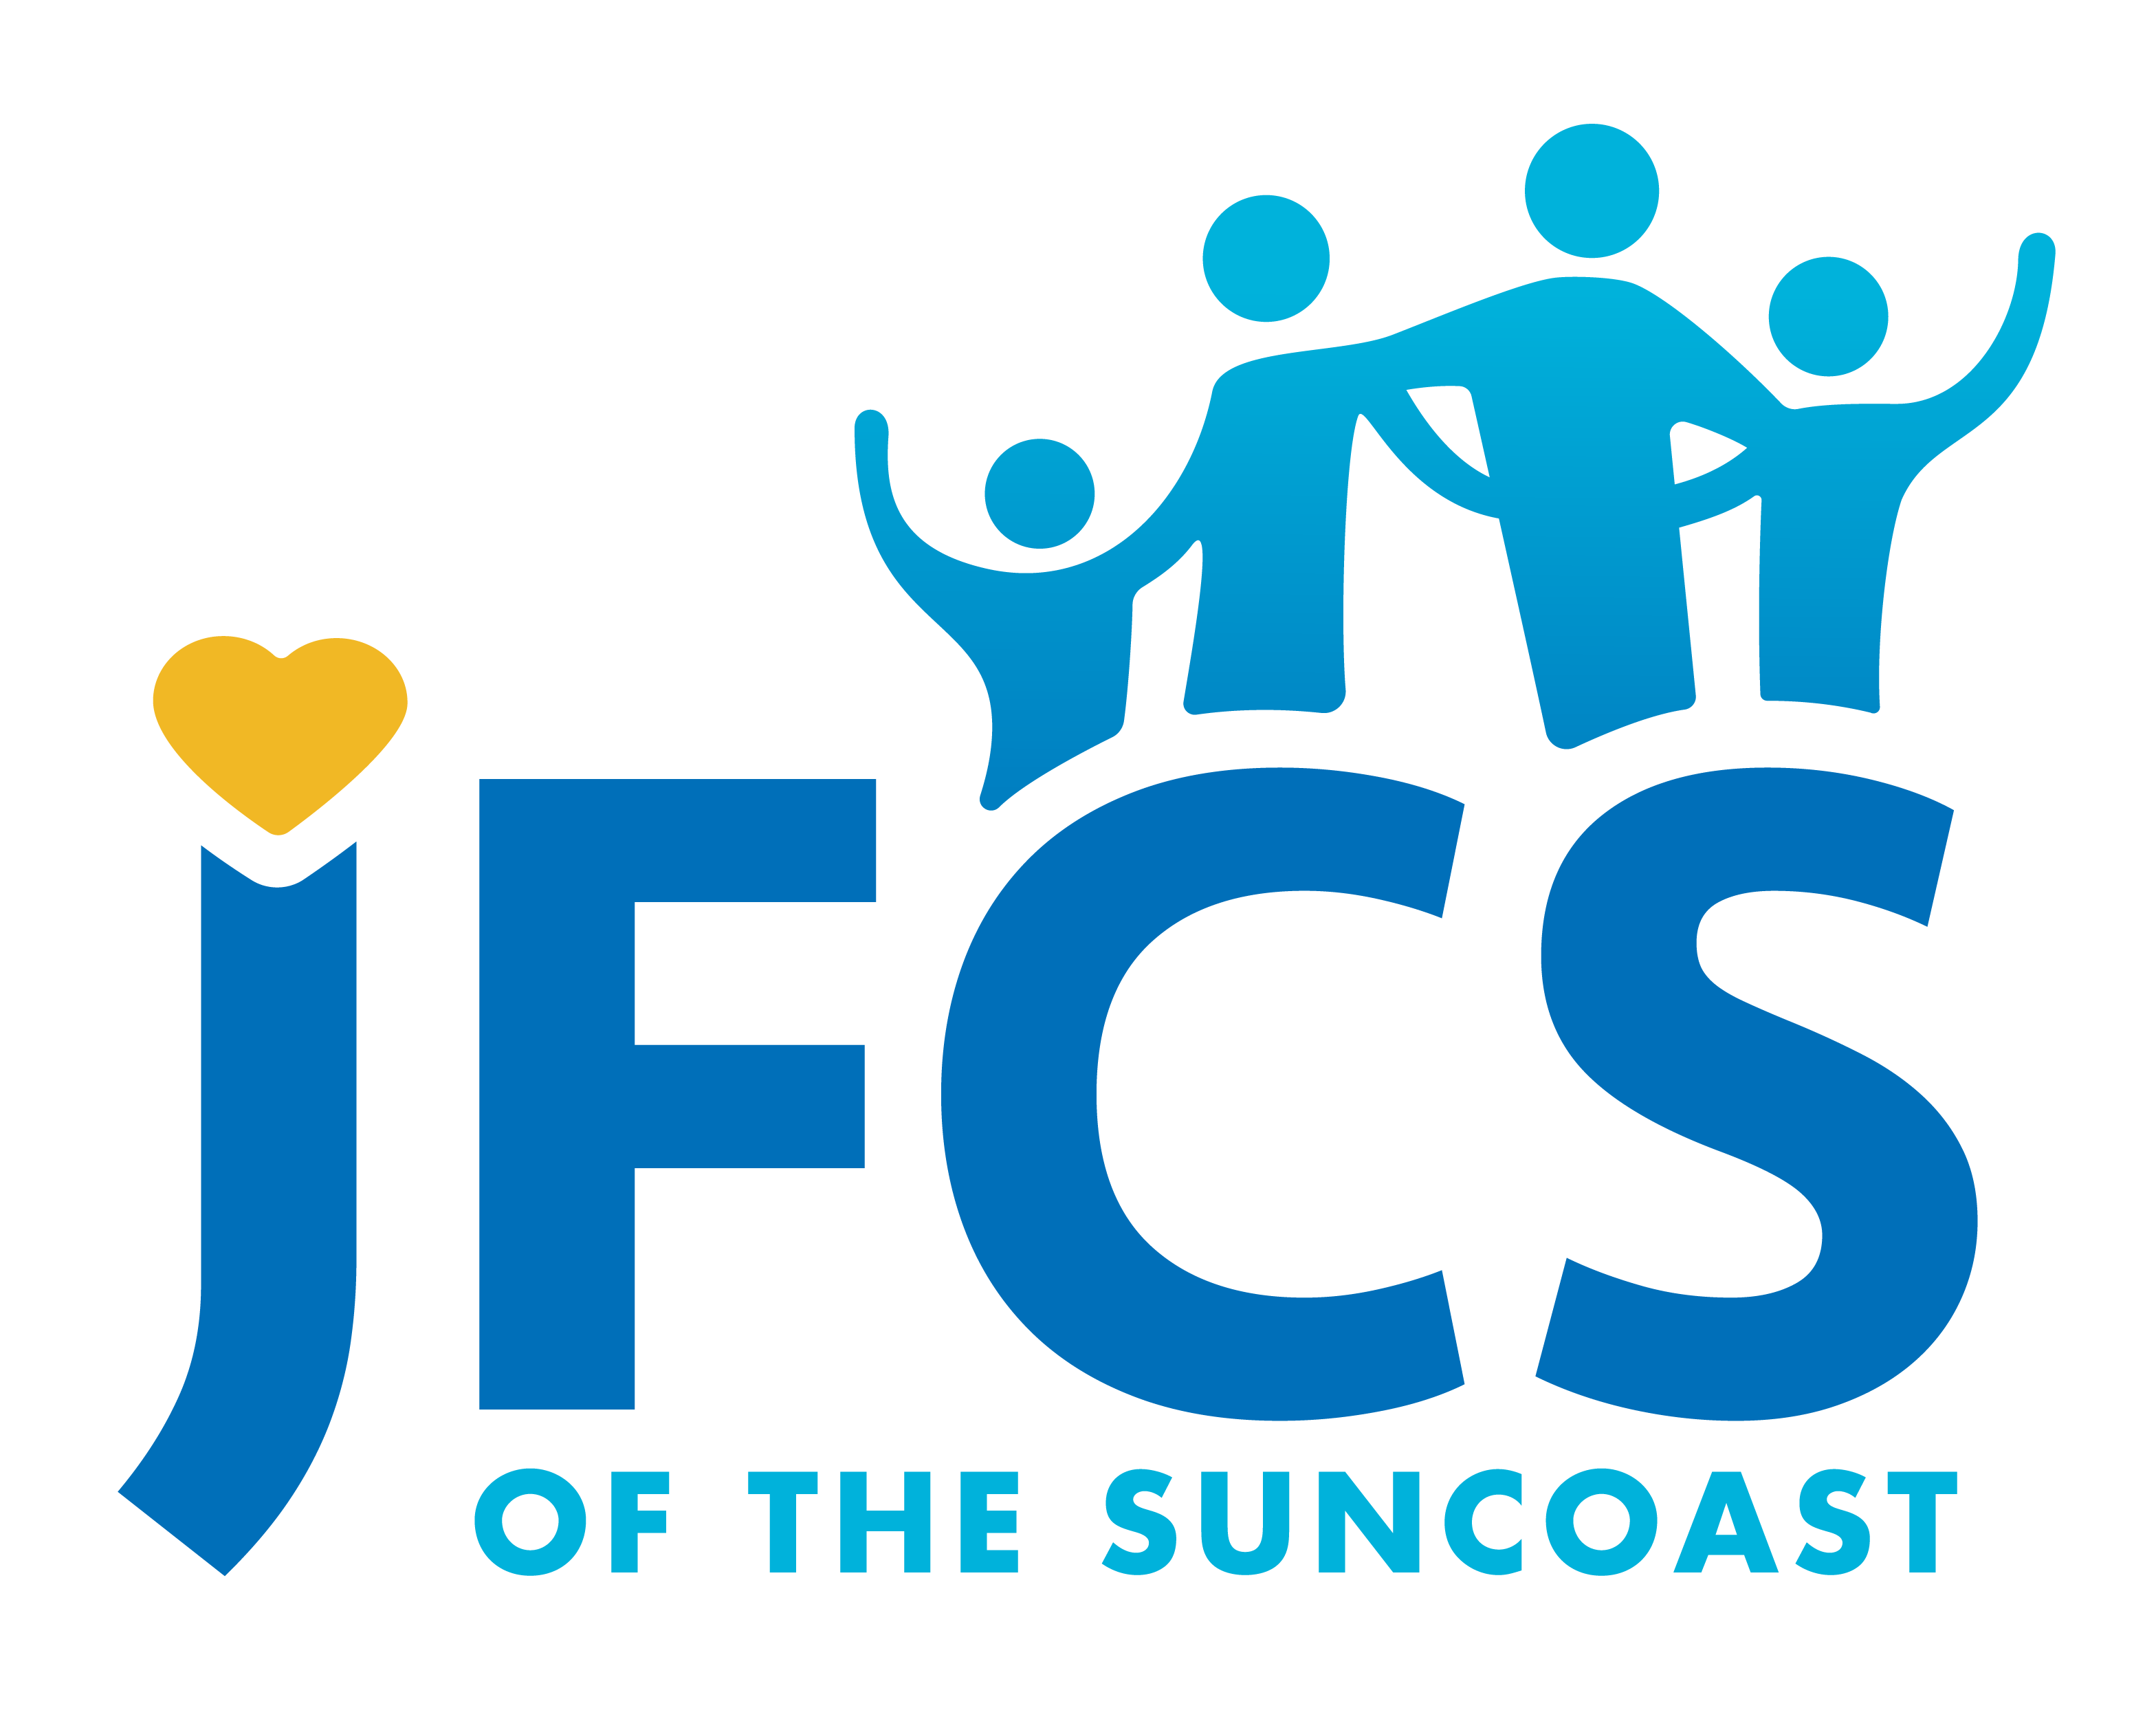 JFCS of the Suncoast logo